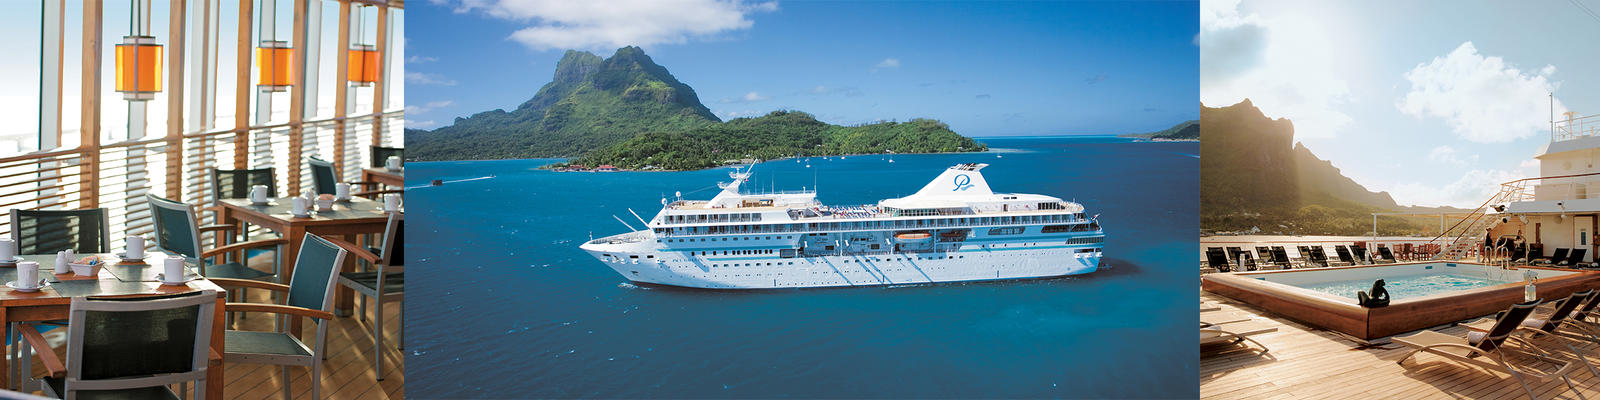 The Best April Luxury Cruises On Cruise Critic - April cruises